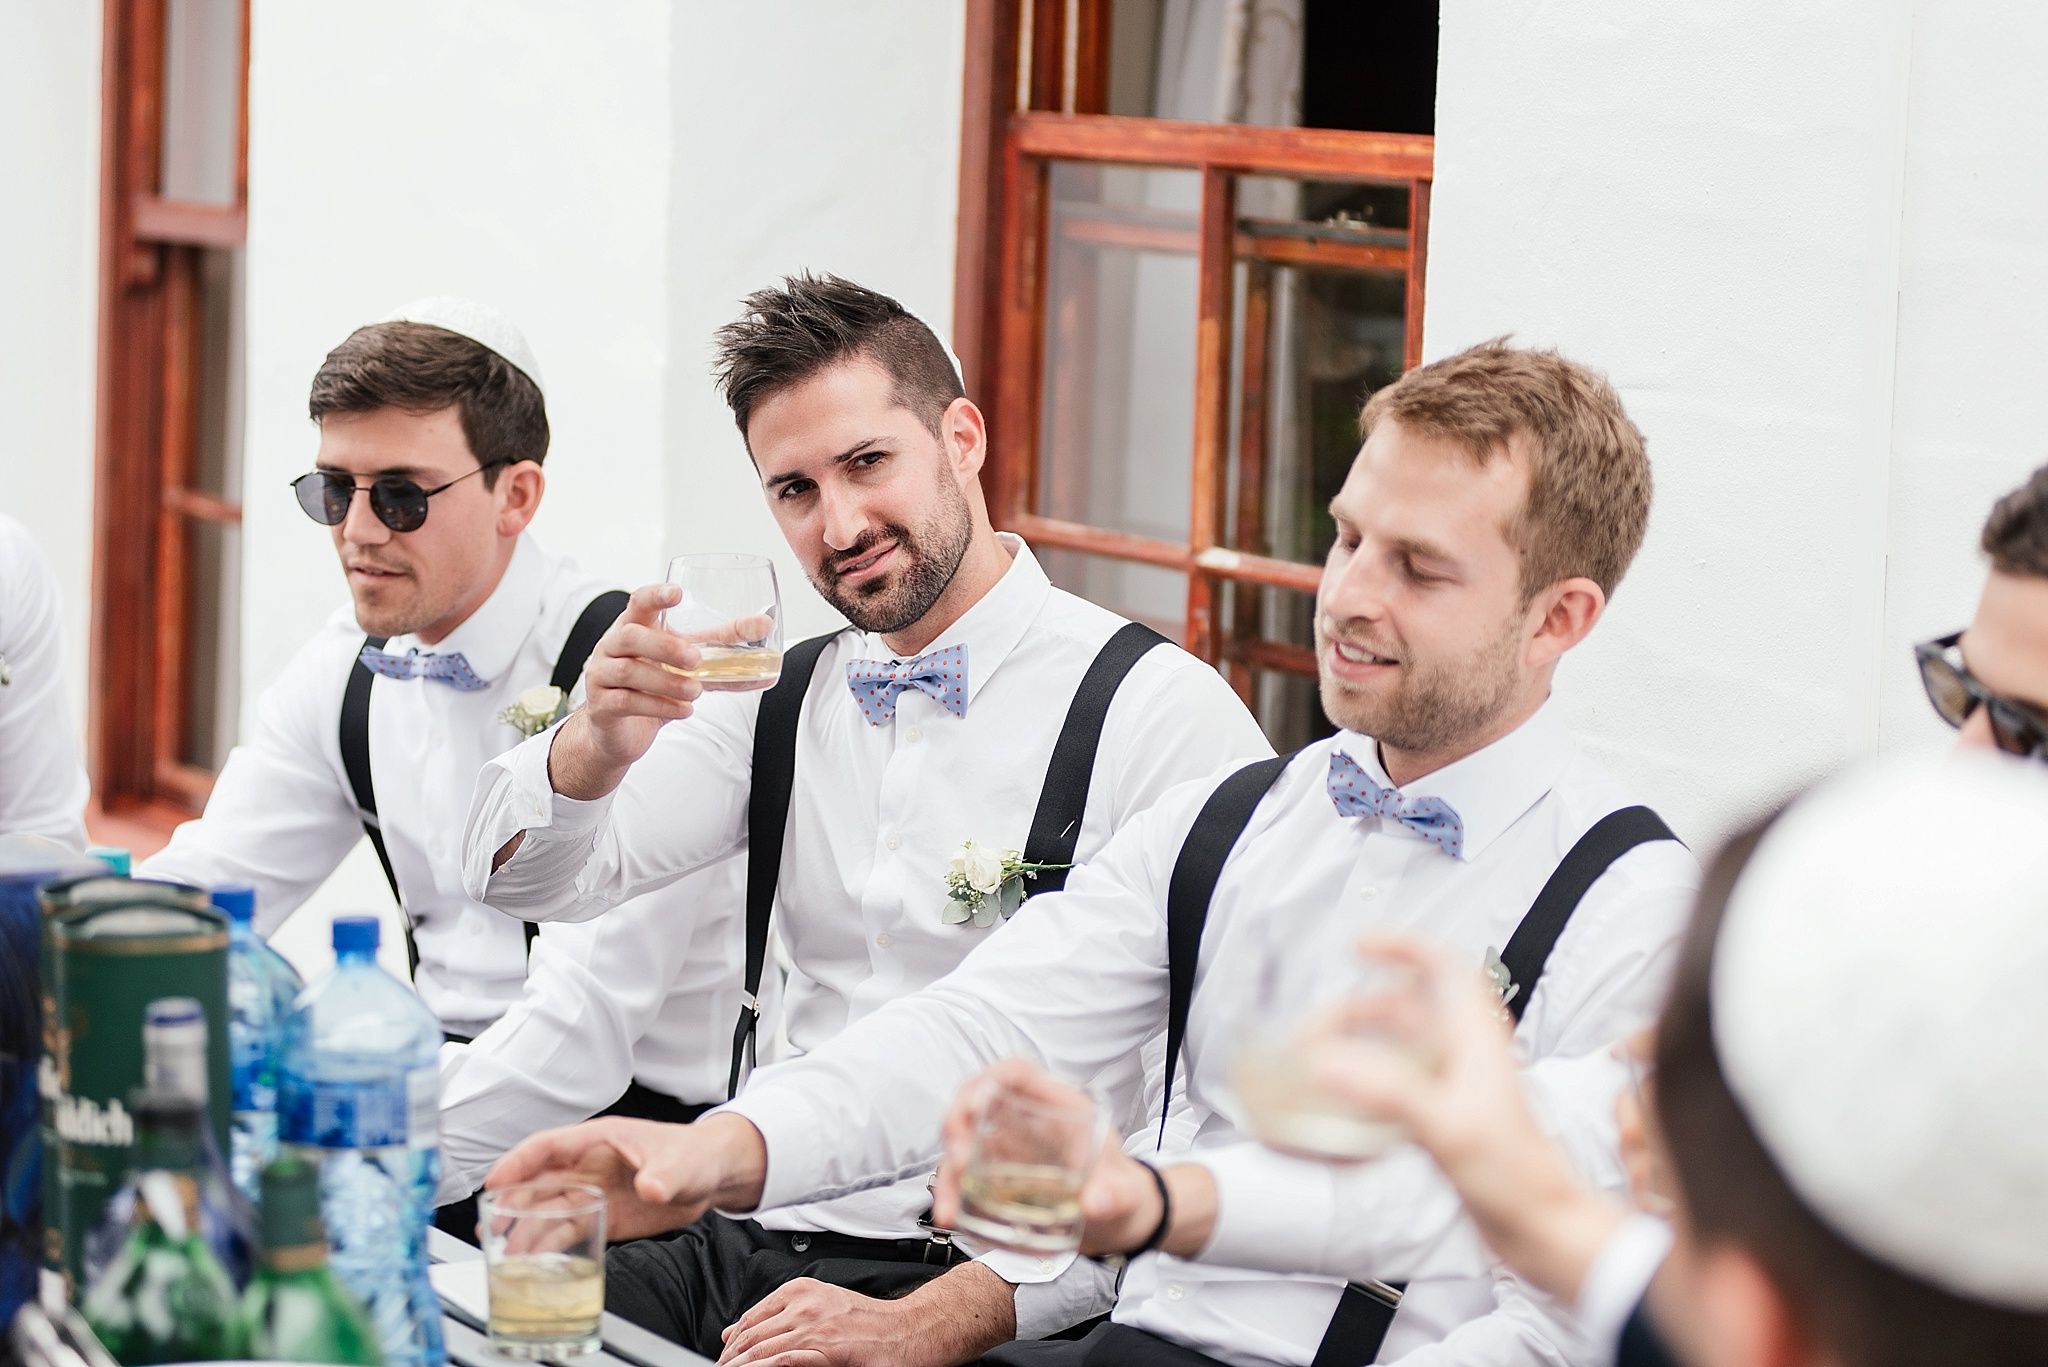 Cape Town Wedding Photographer Darren Bester - SuikerBossie - Stephen and Mikaela_0004.jpg